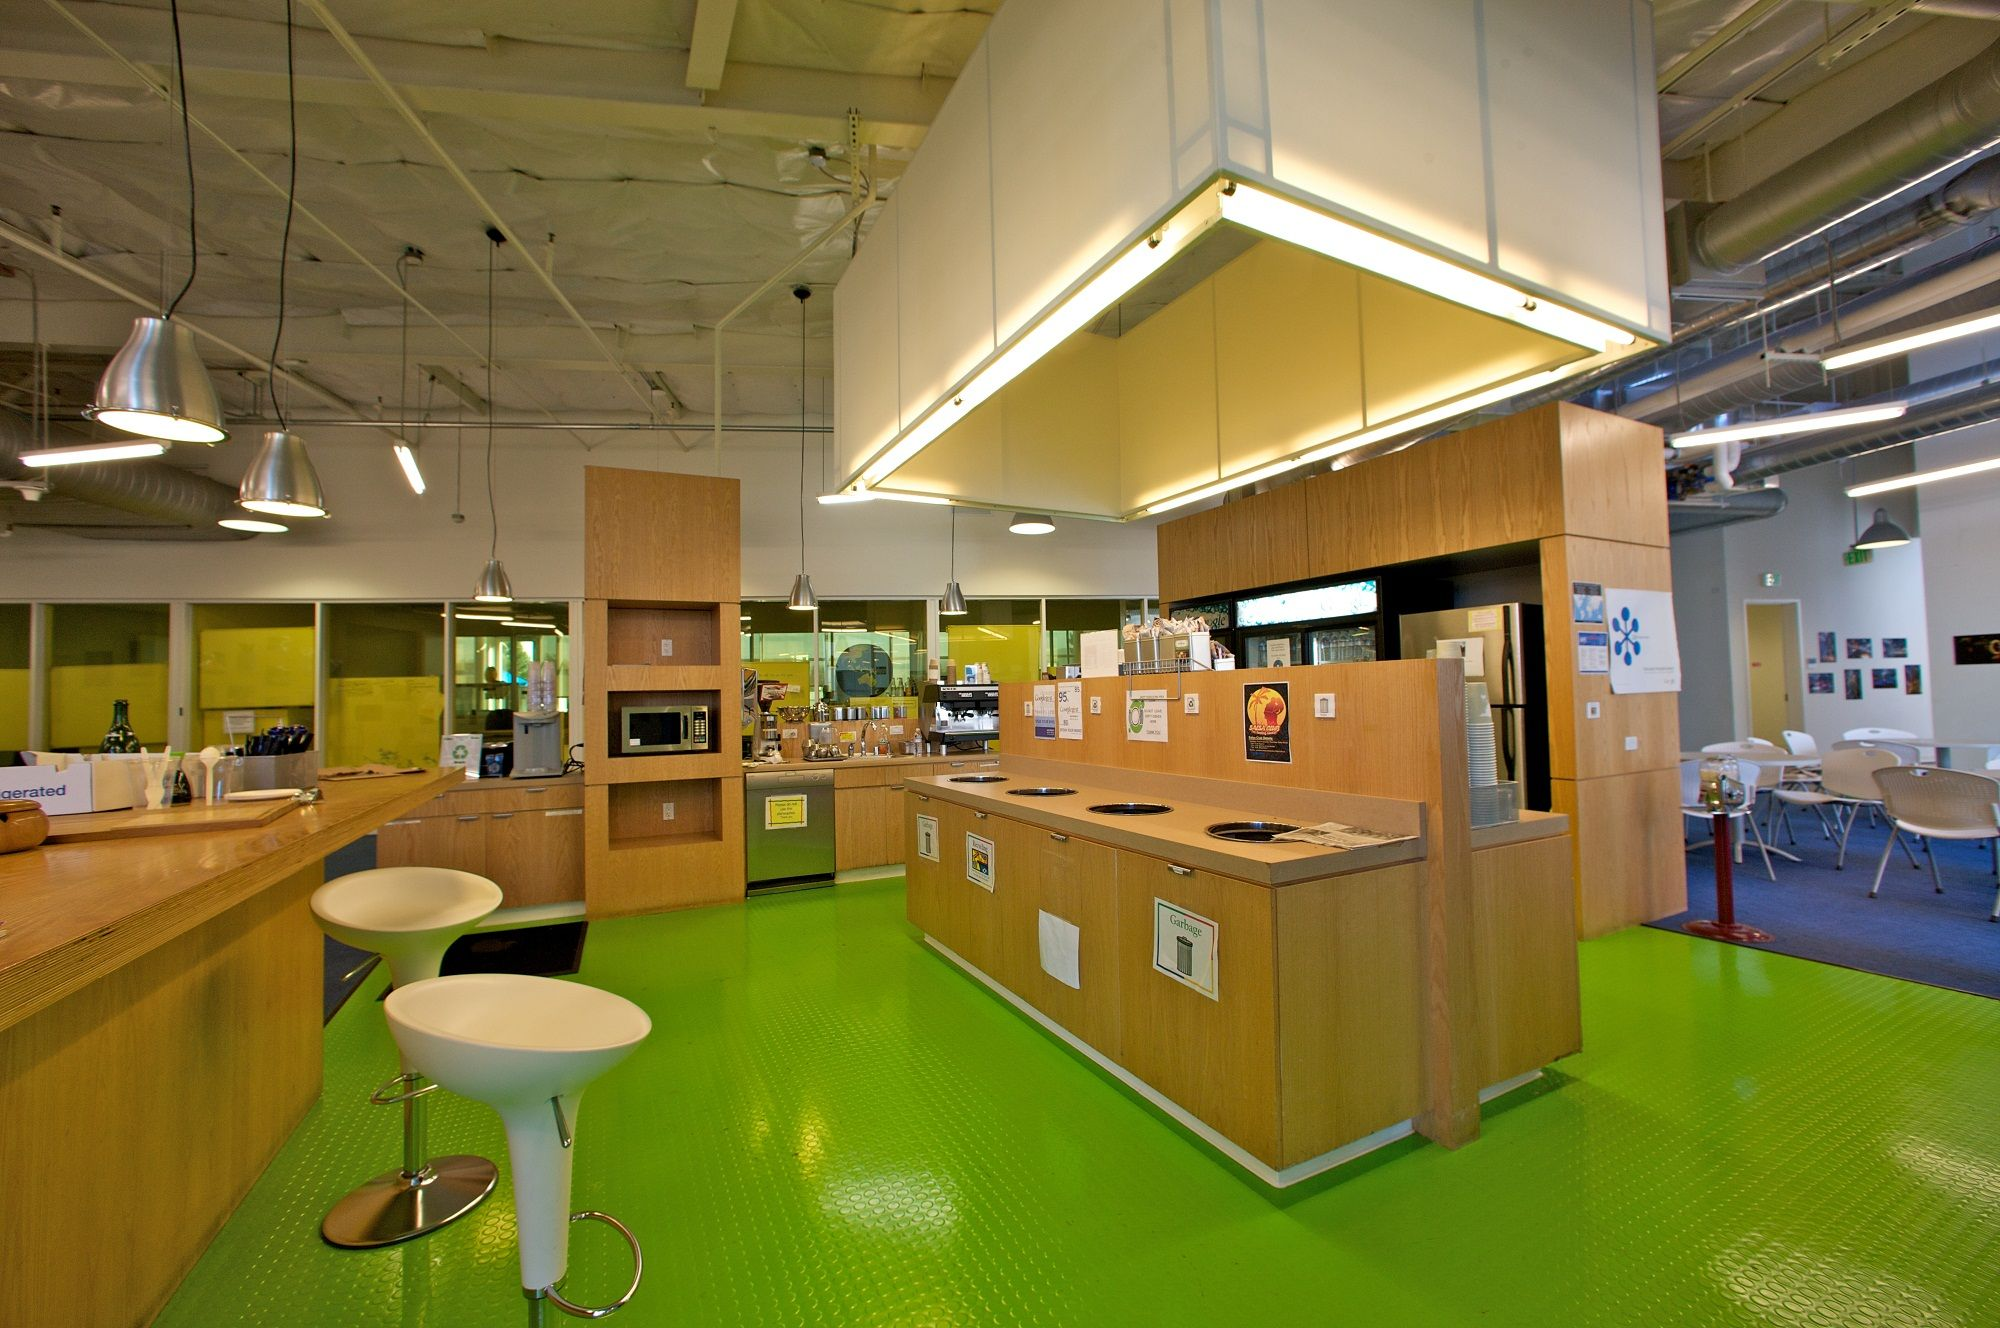 Awesome Mini Kitchen In Googleu0027s Mountain View Headquarters, Which Is Known As The  Googolplex.